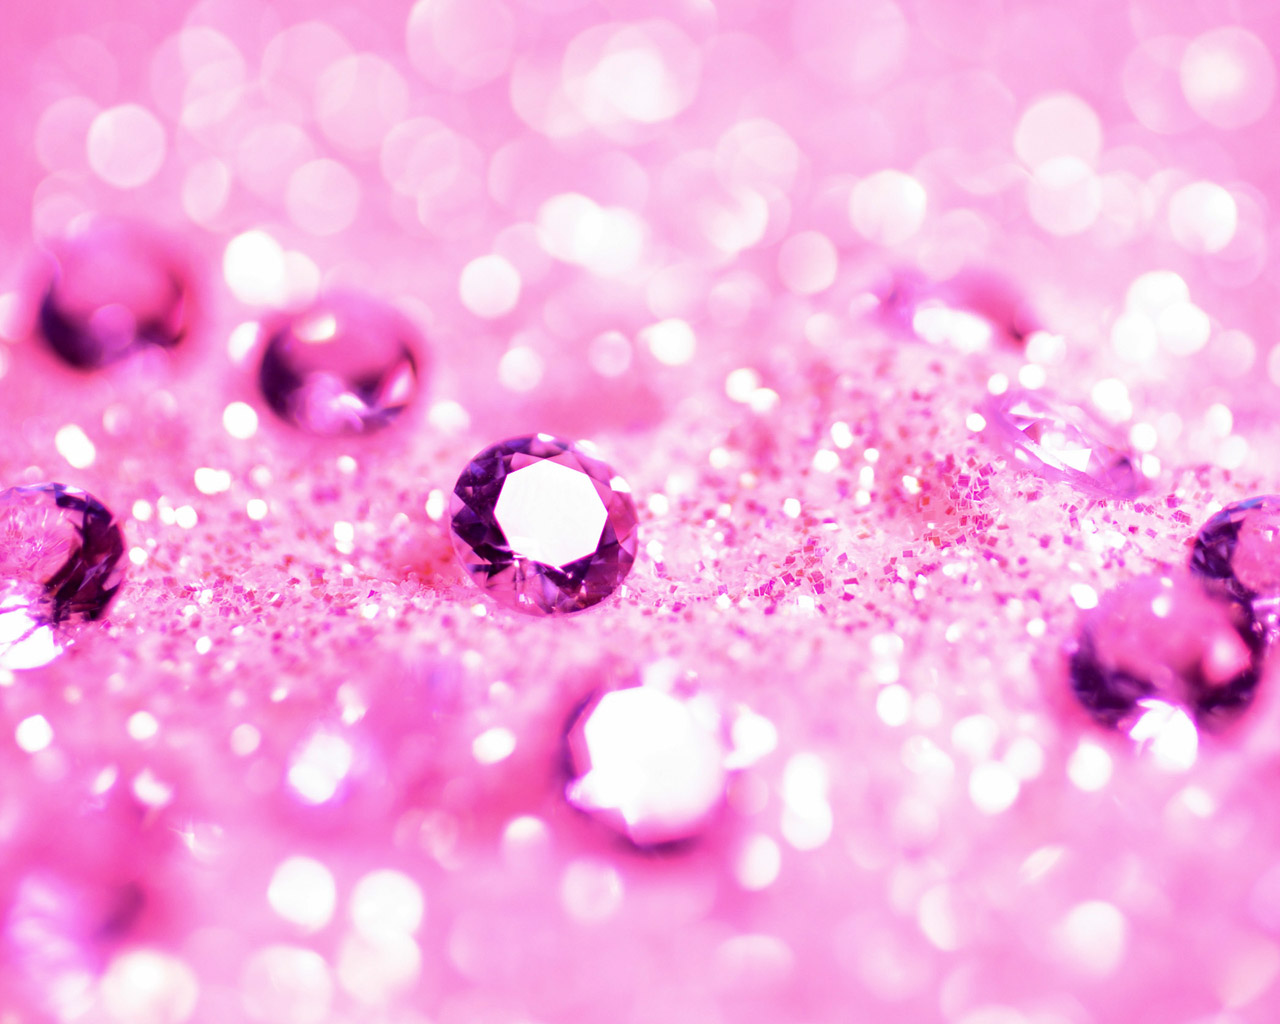 40 Cool Pink Wallpapers for Your Desktop 1280x1024